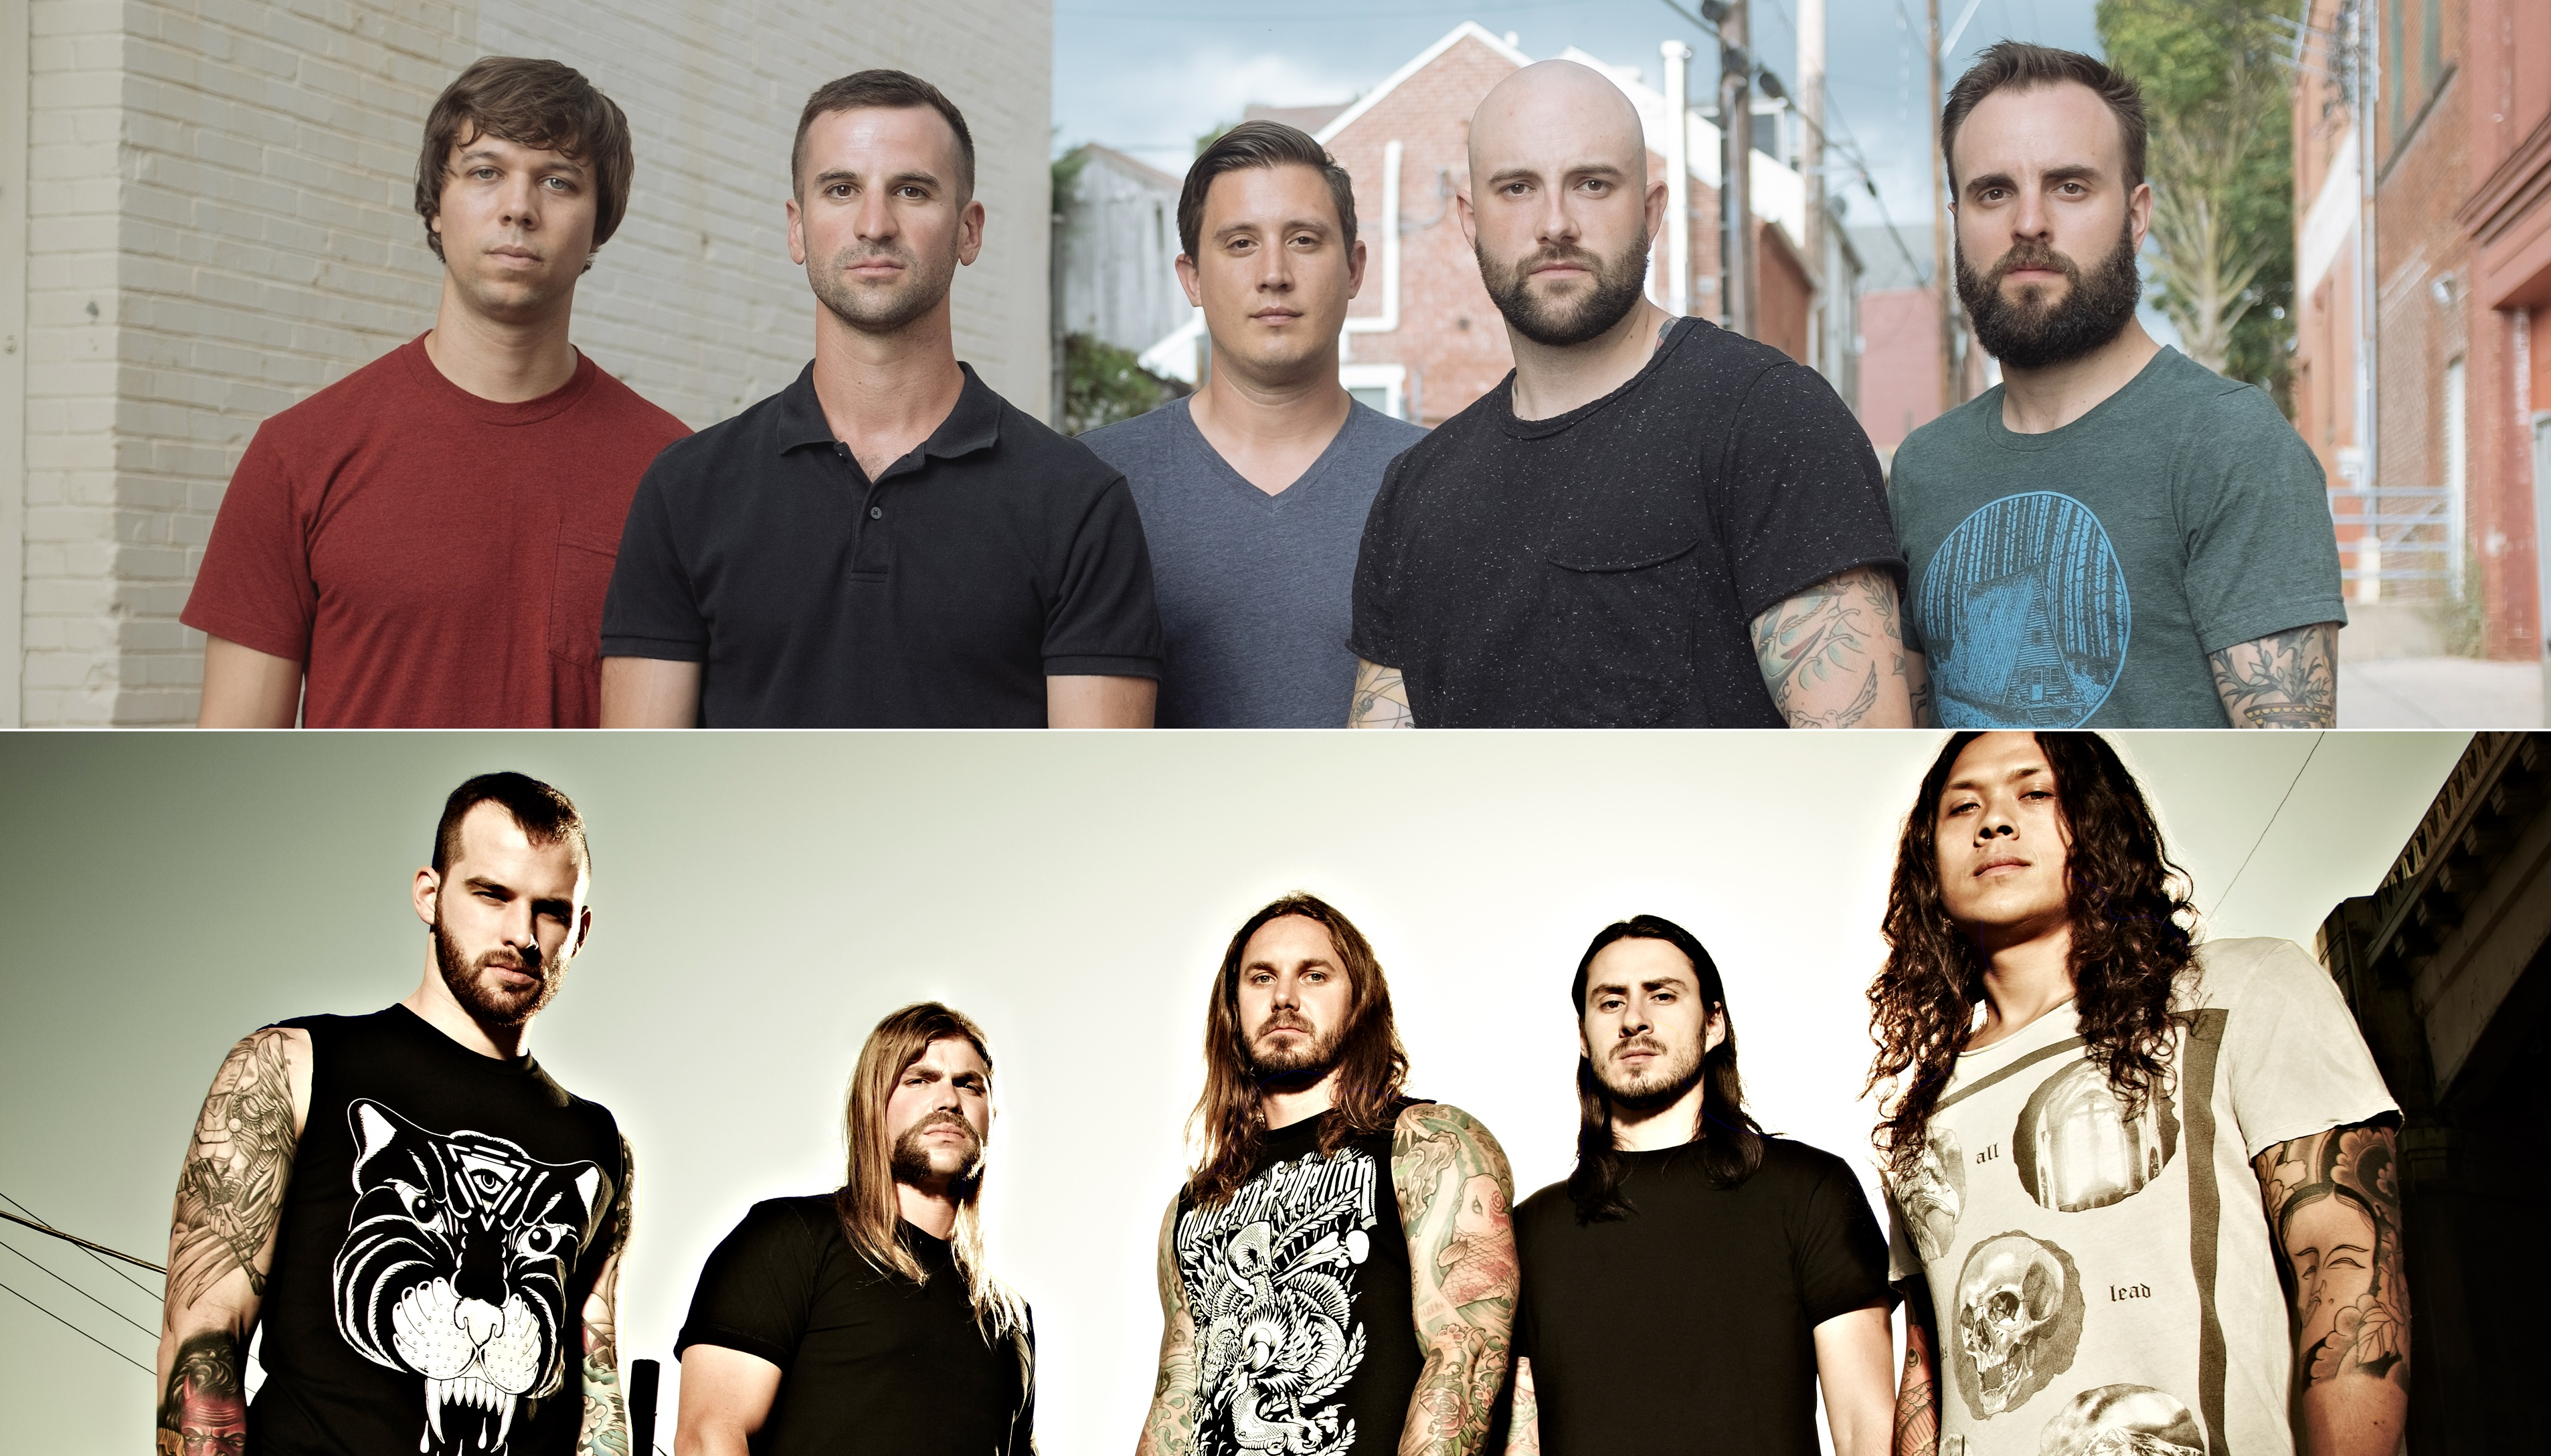 August Burns Red As I Lay Dying